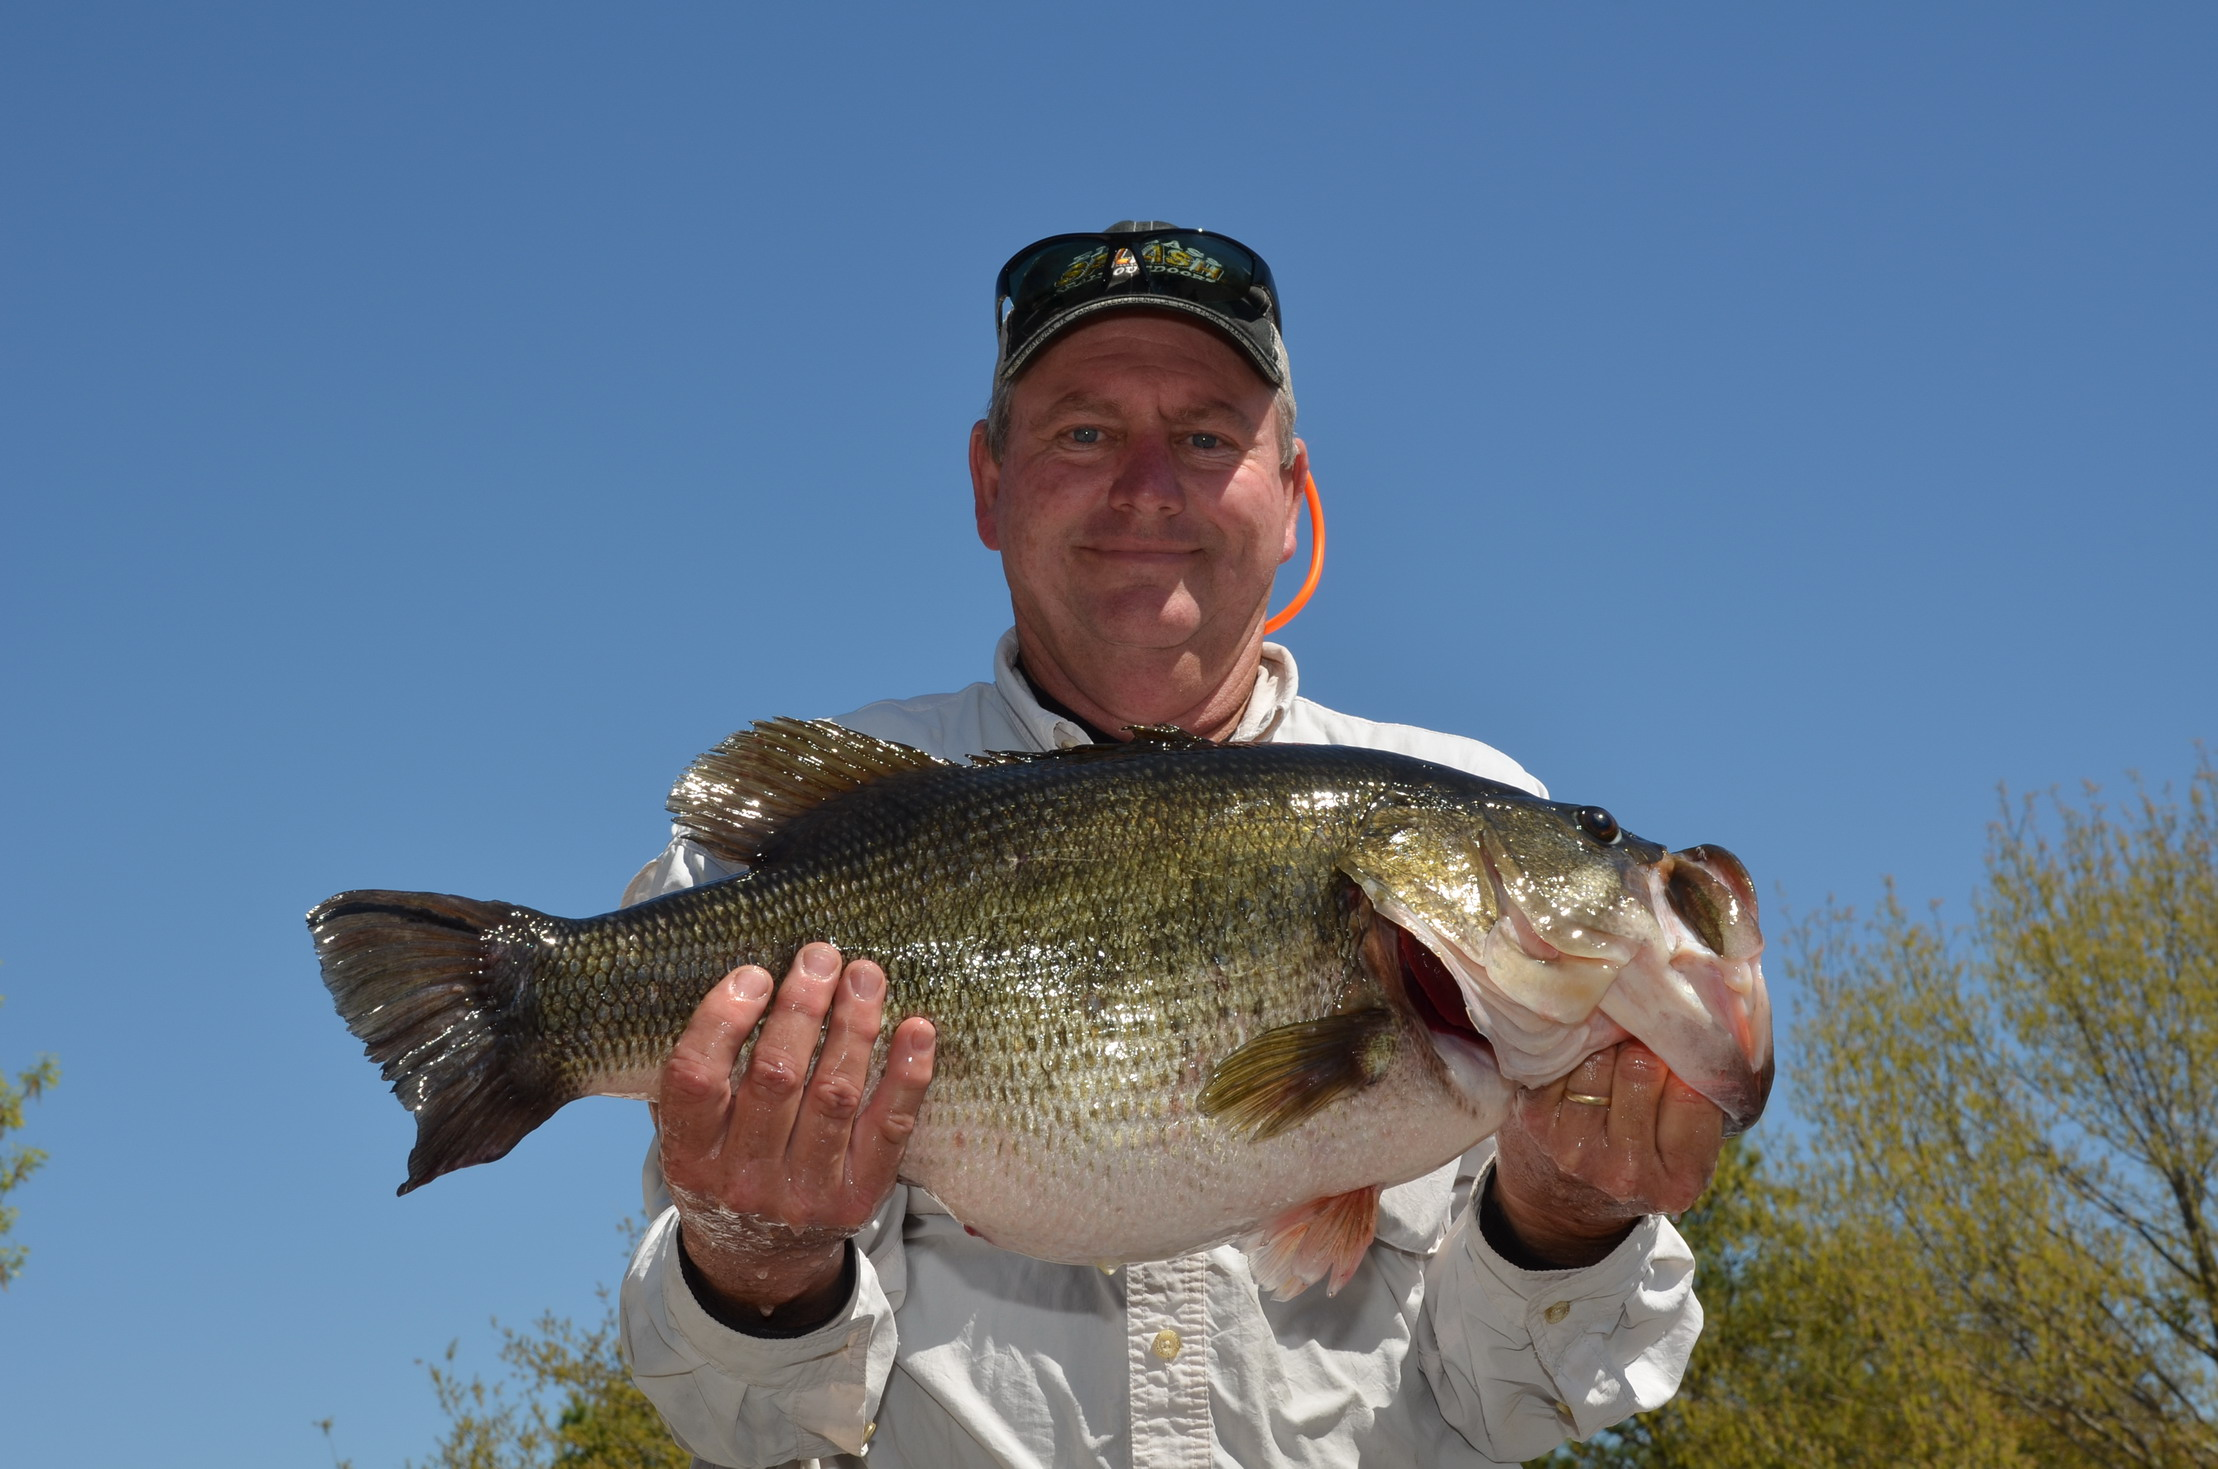 Lake fork bass fishing produces another sharelunker no 547 for Texas parks and wildlife fishing report